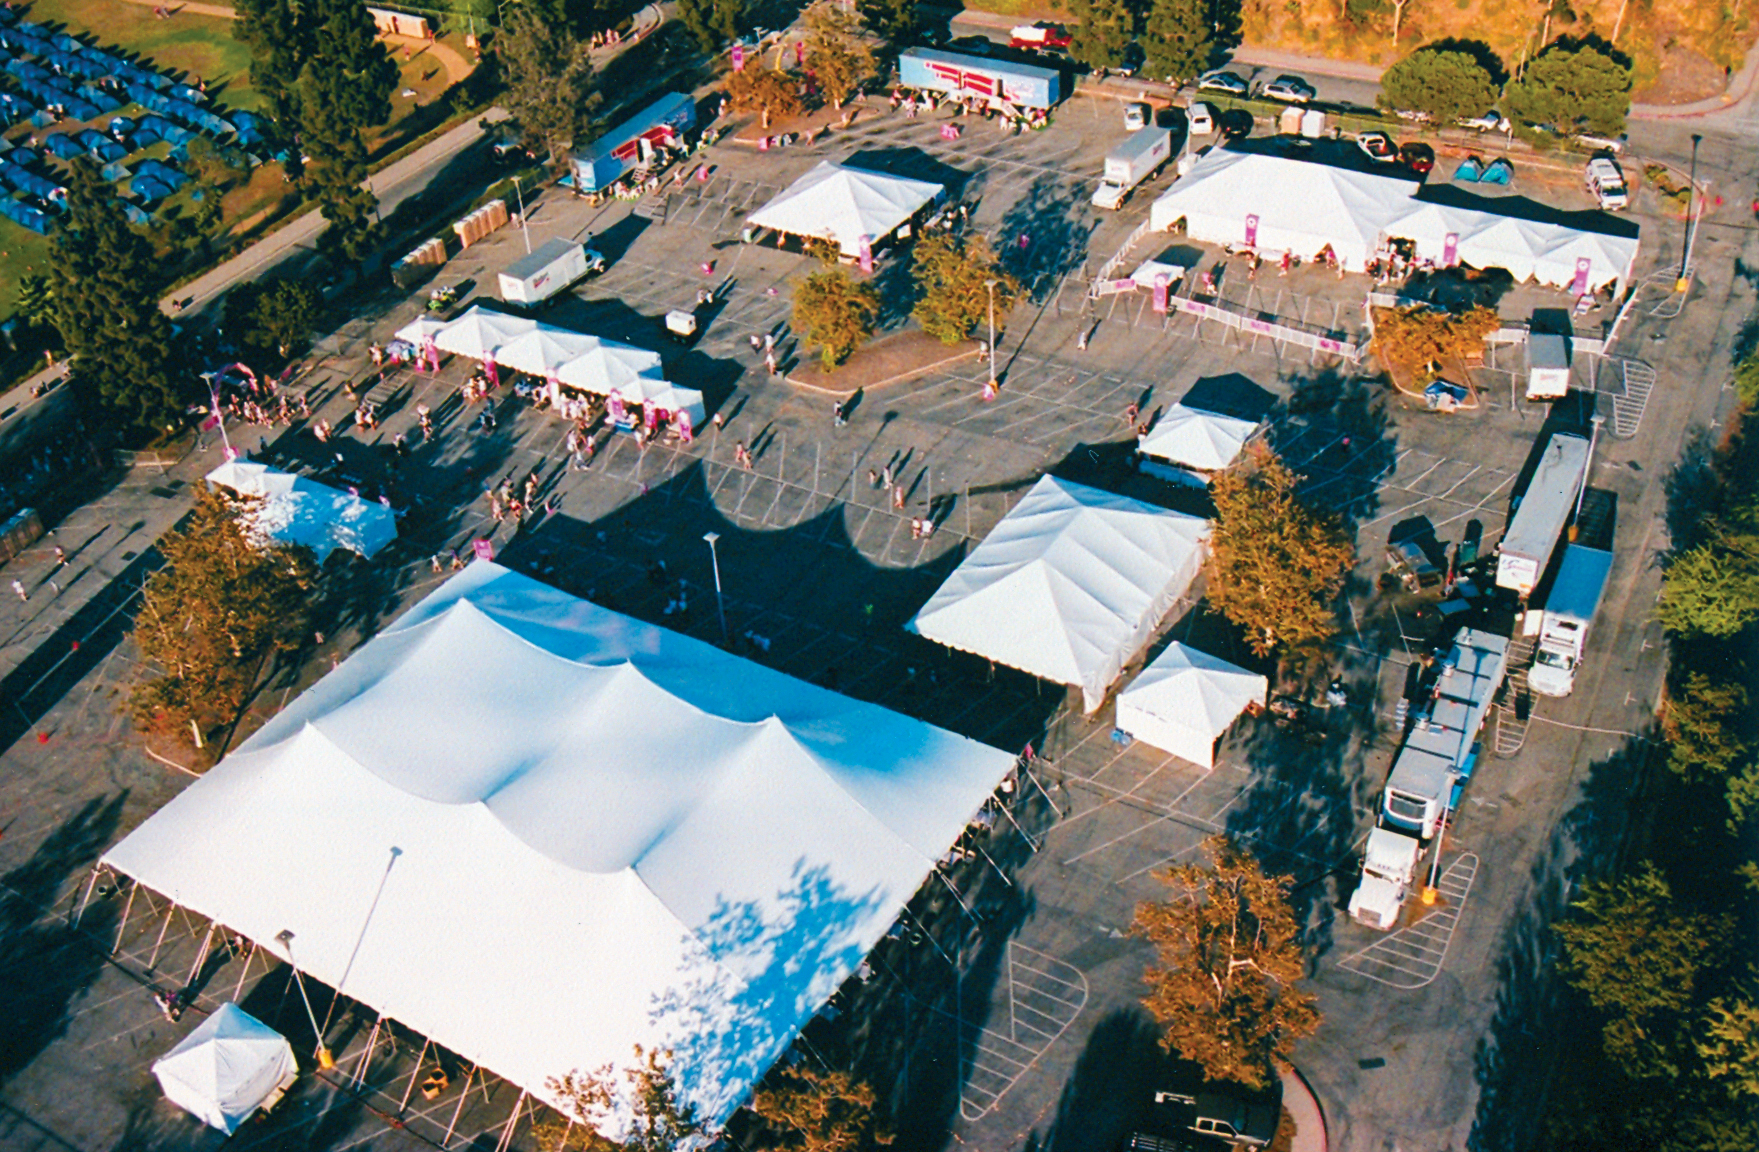 ChouraEvents_Aerial_Tenting_Festival.jpg